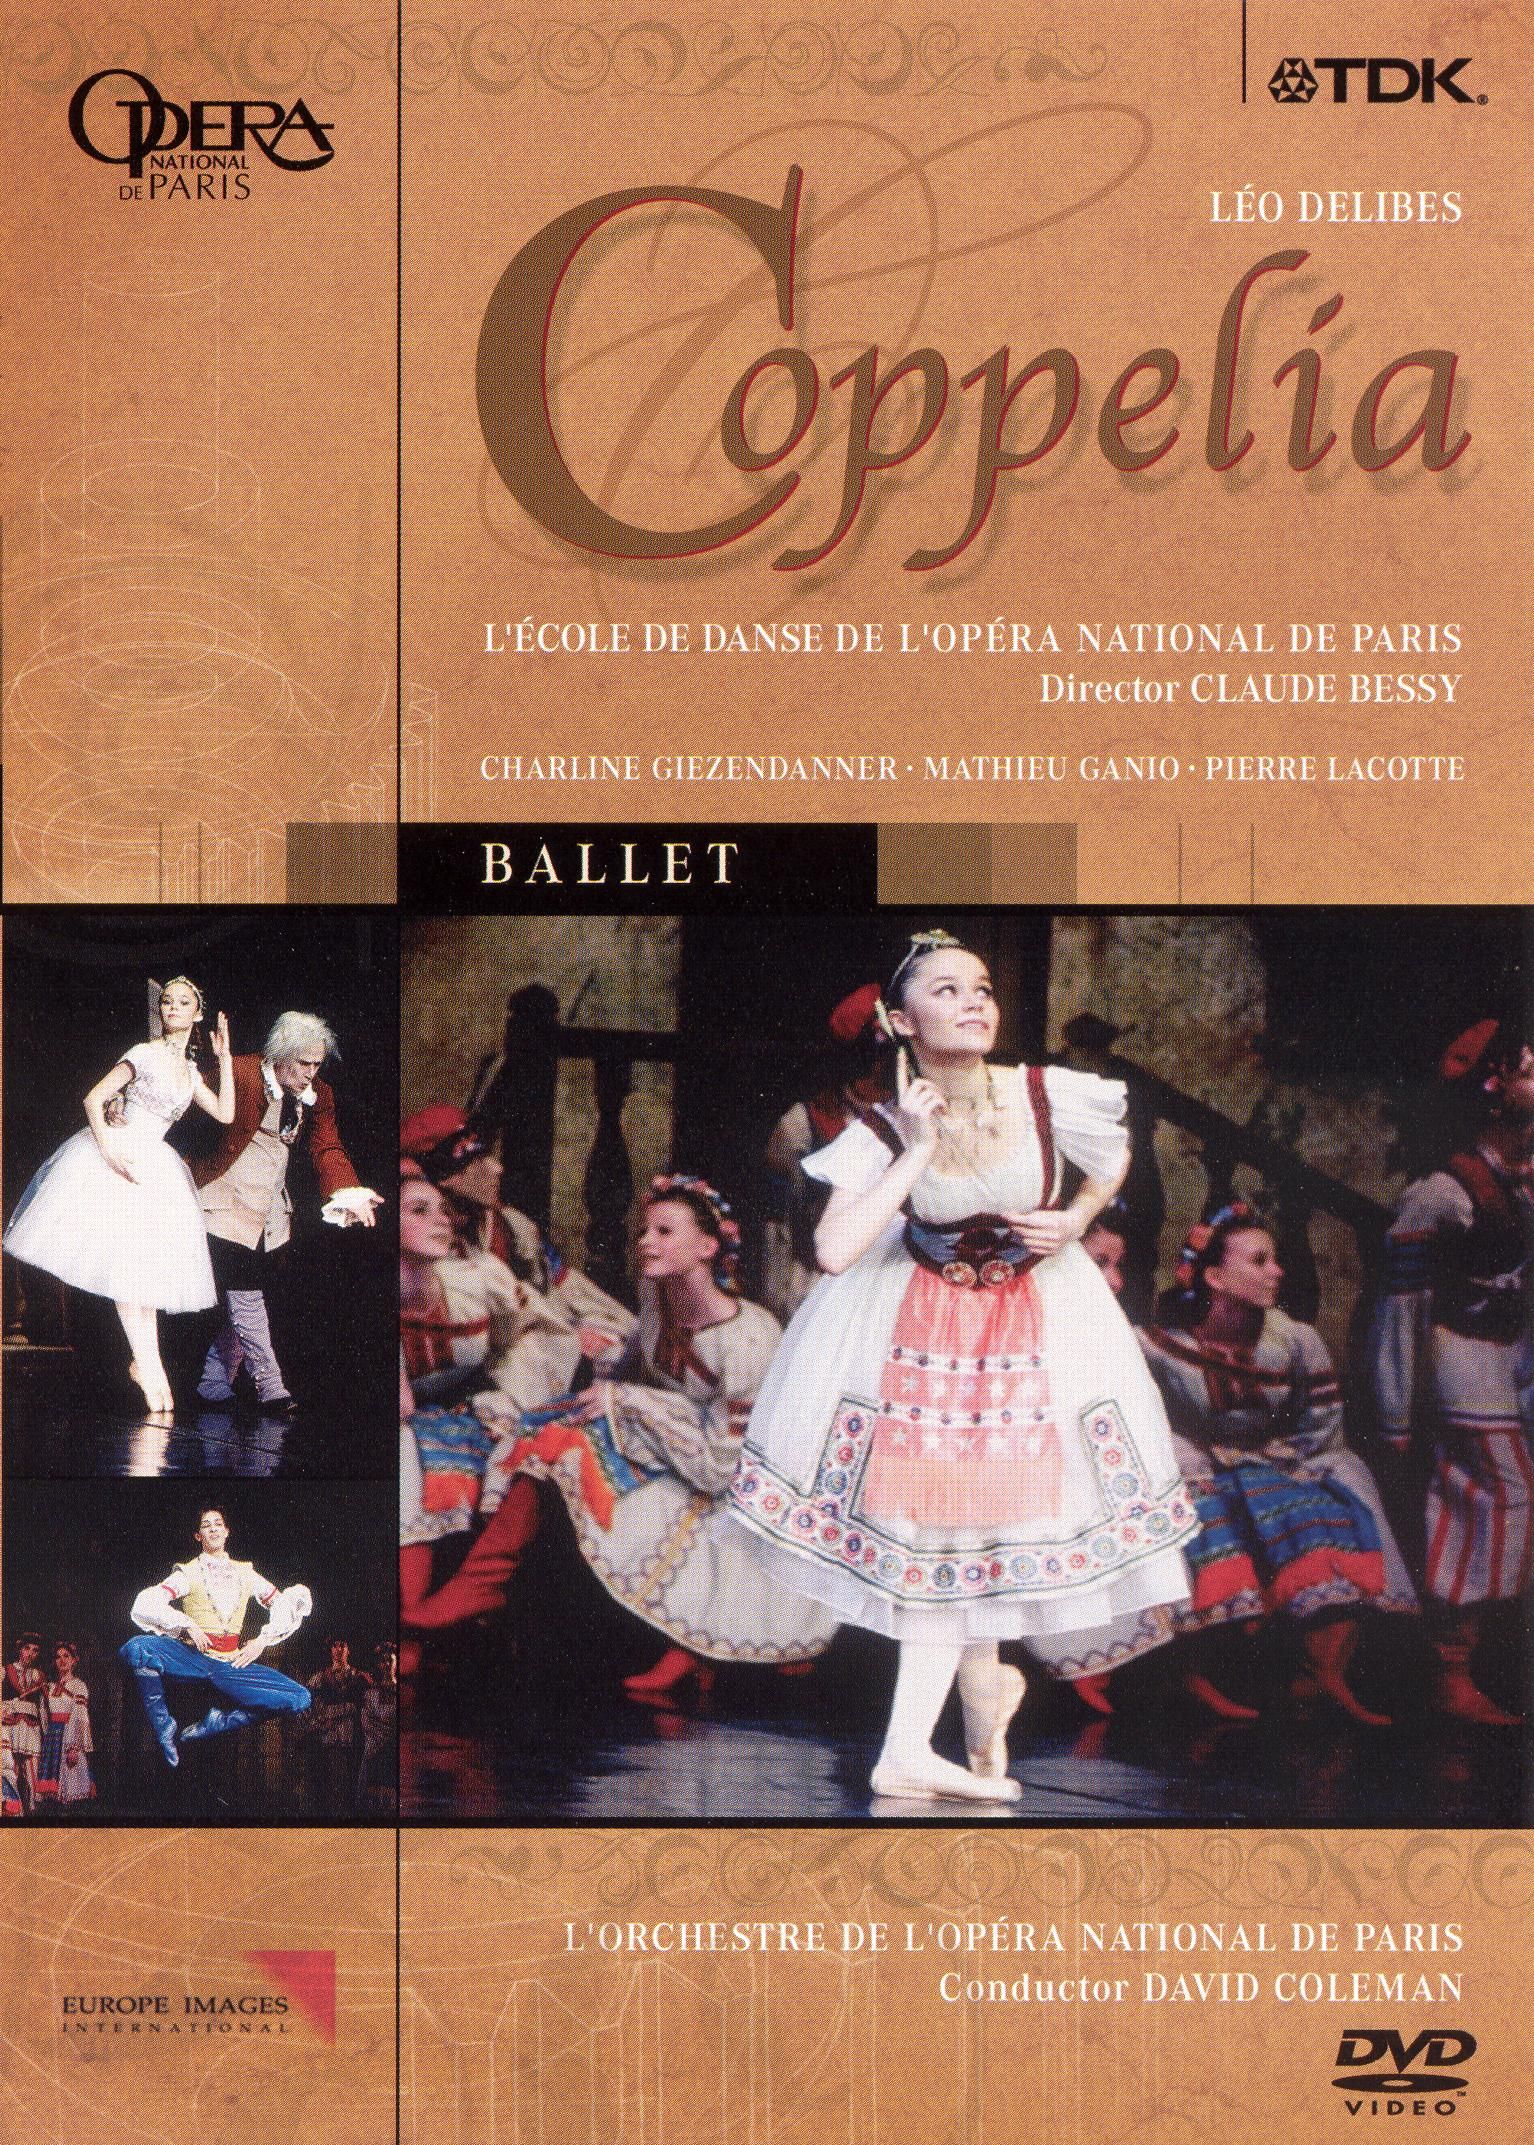 Coppelia (Opera National de Paris)